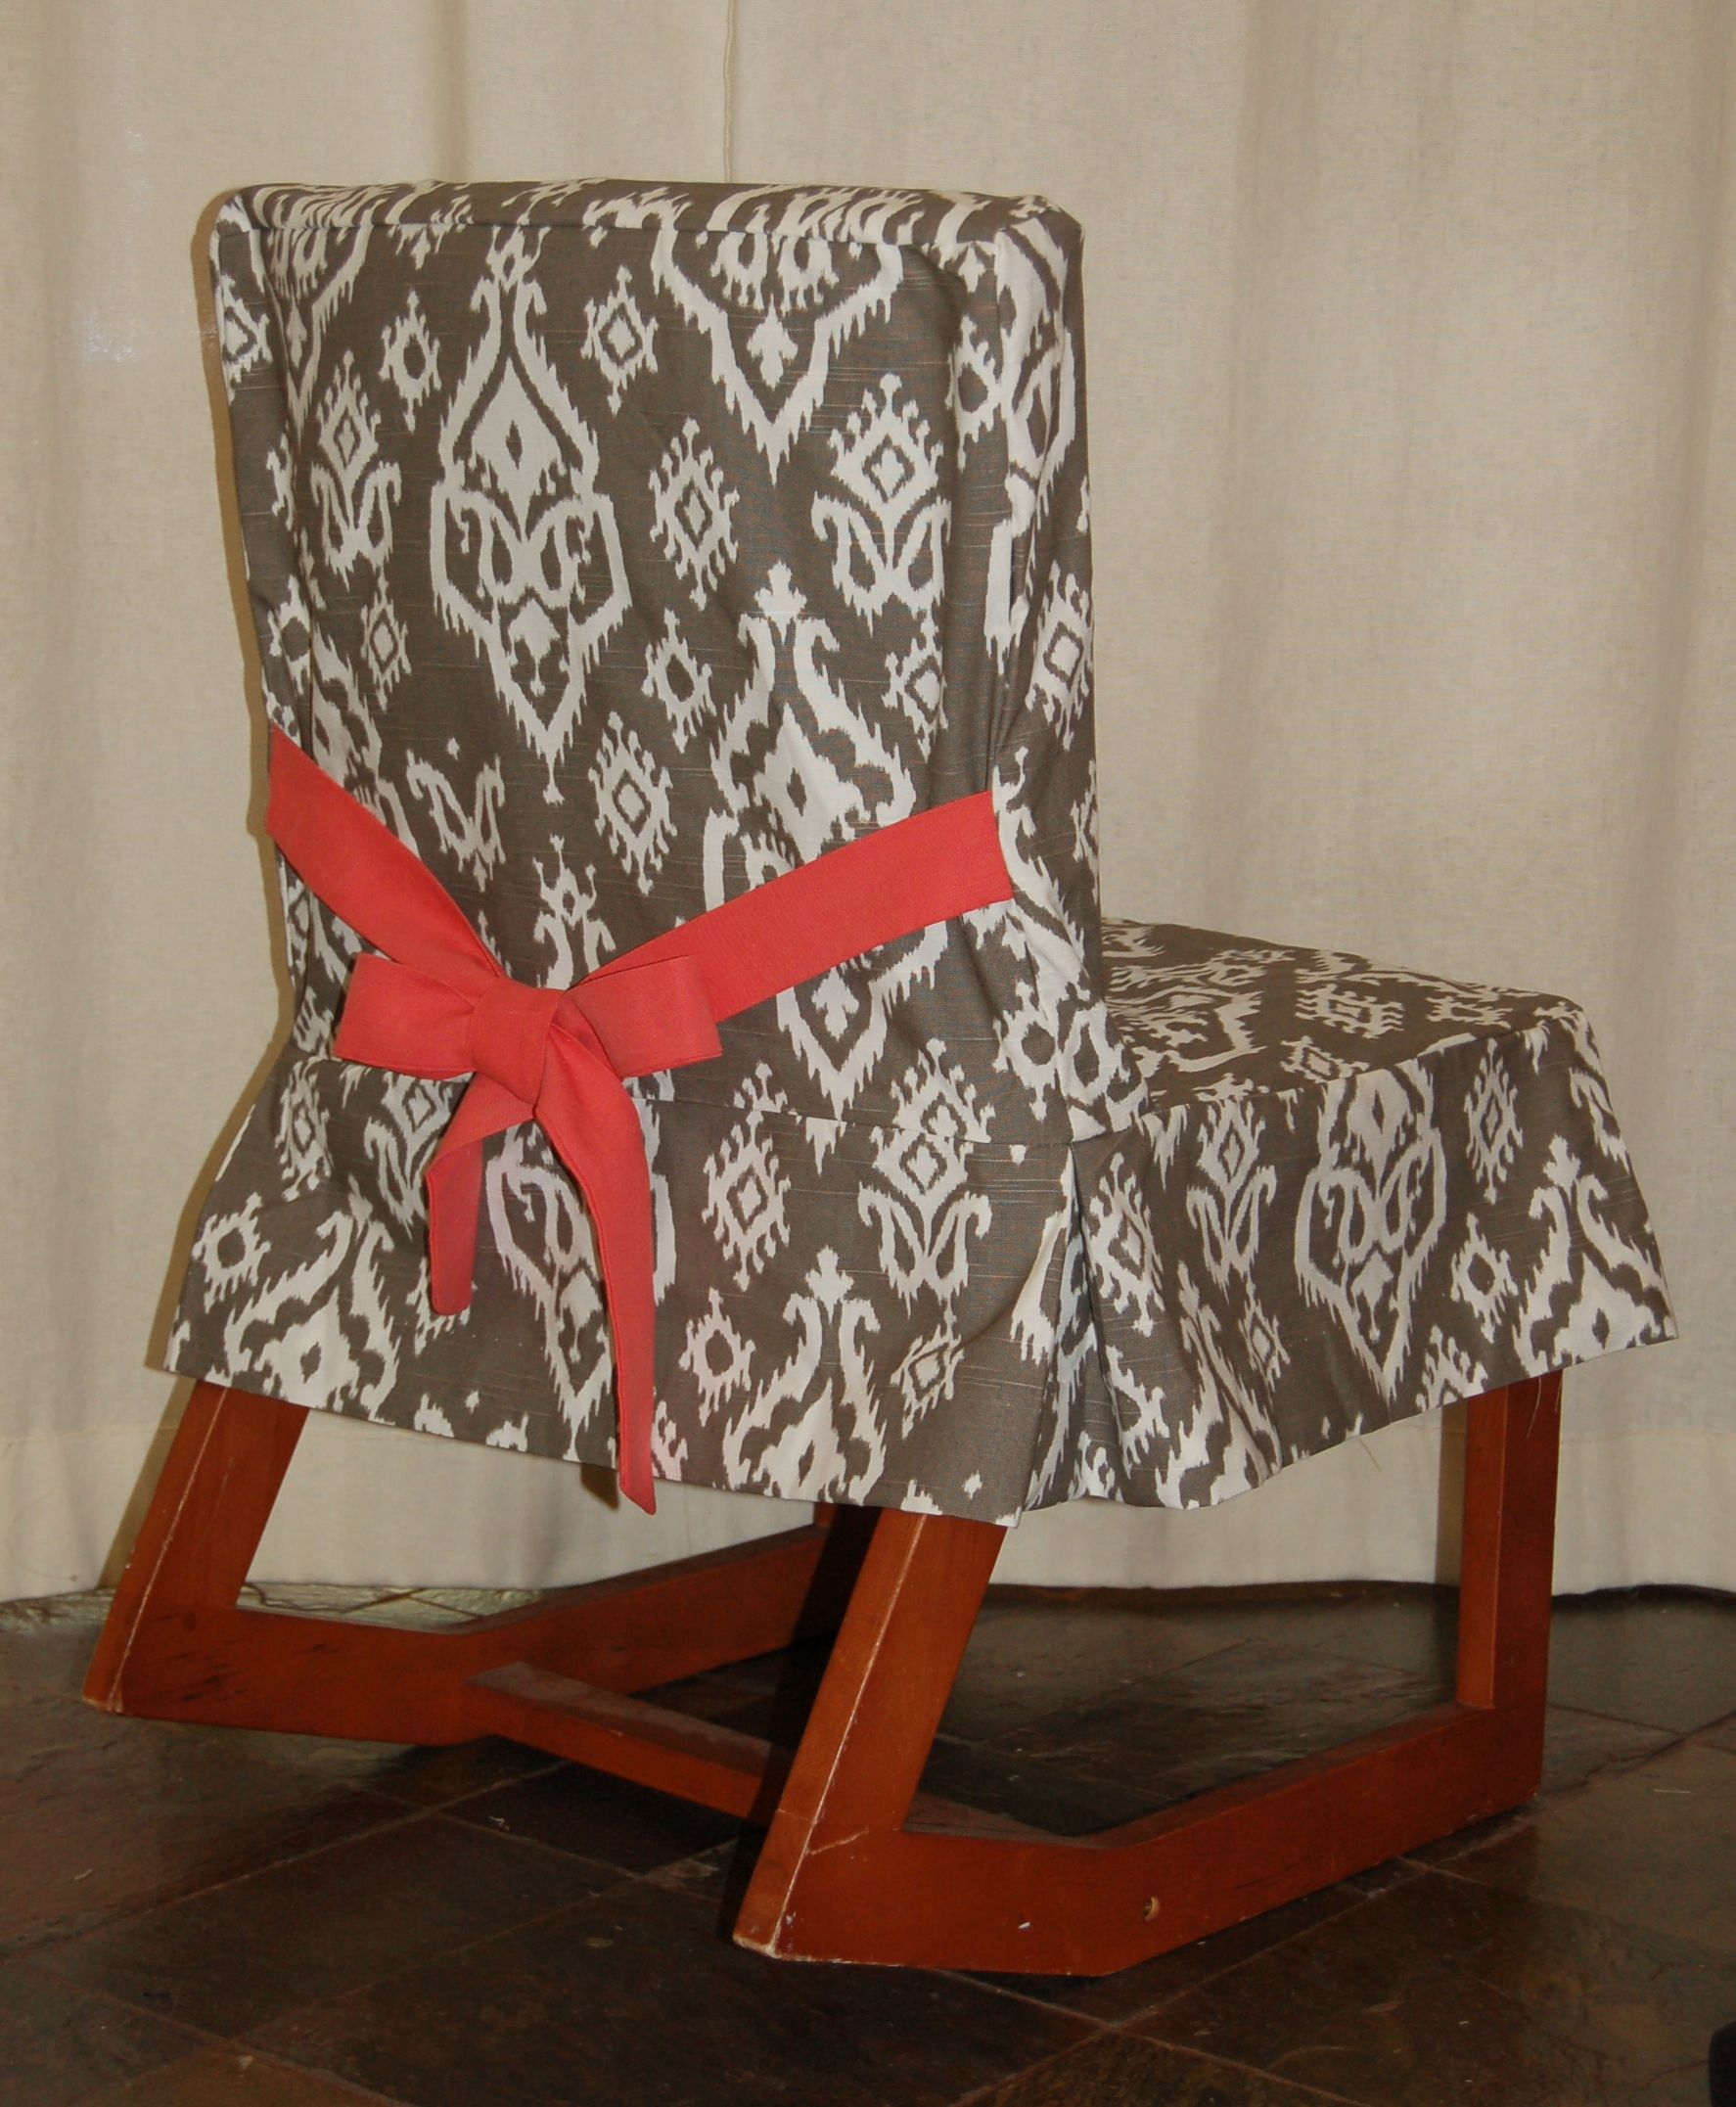 Dorm Room Chair Parson Chairs Walmart Slipcover Suite Covers